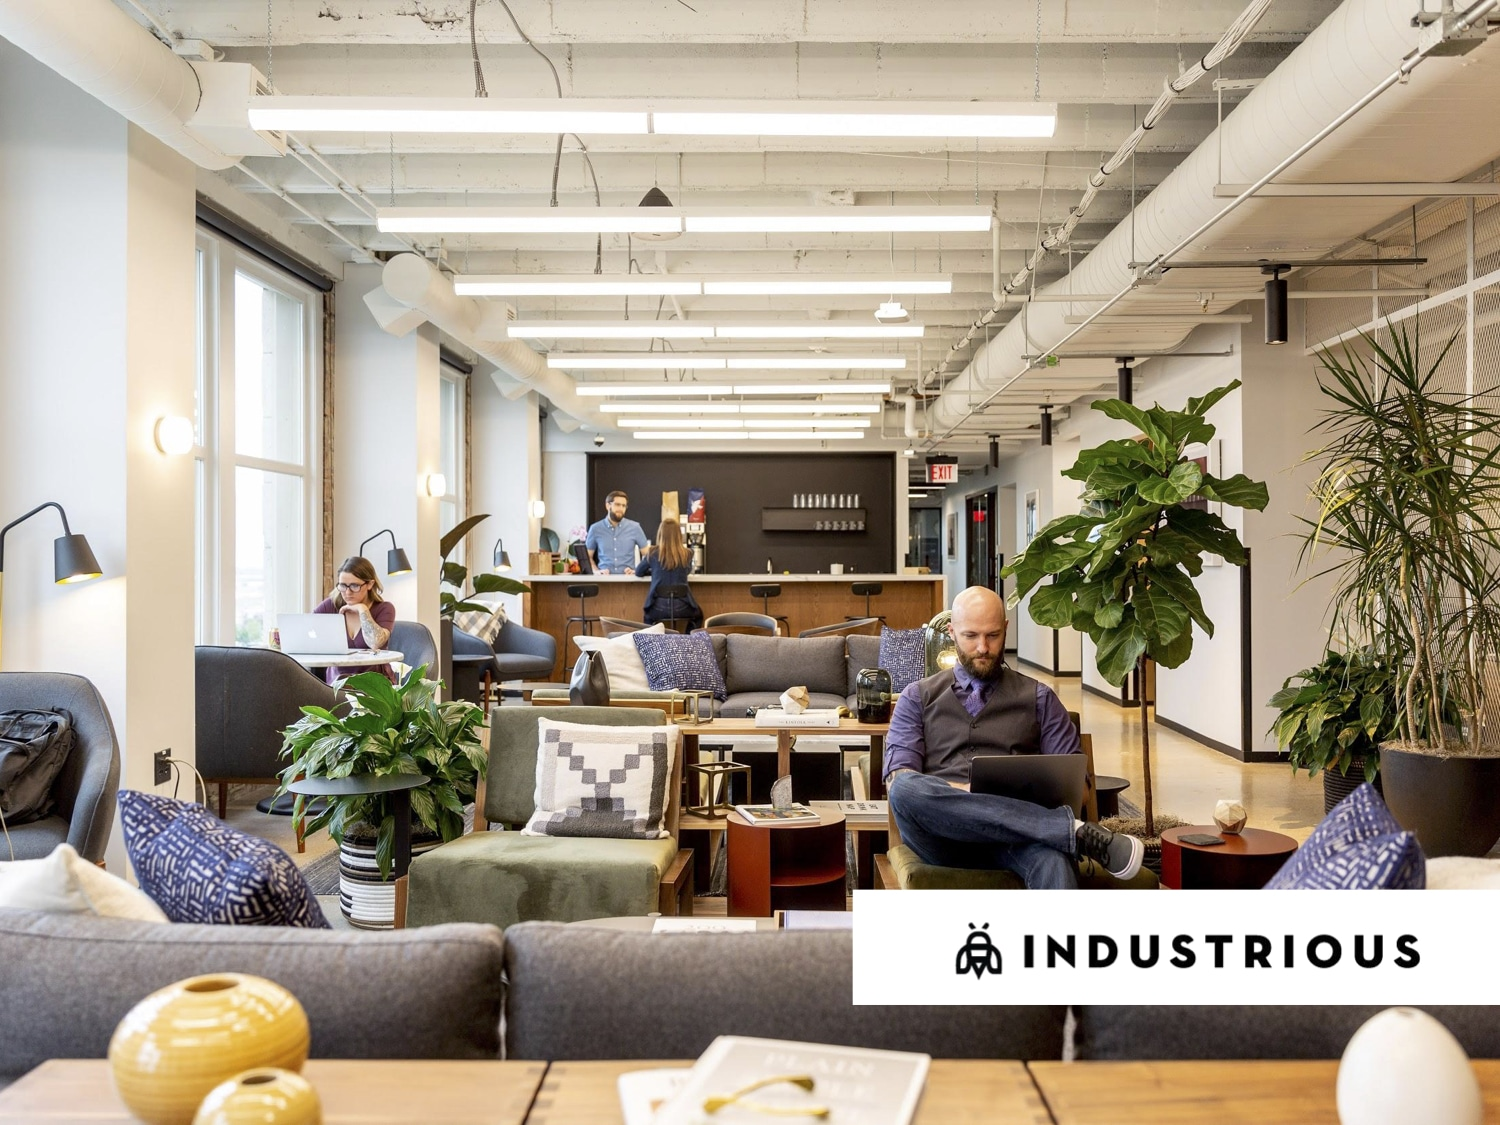 Convene, Industrious Meet The Demand For Flex Office Space in a Major Way